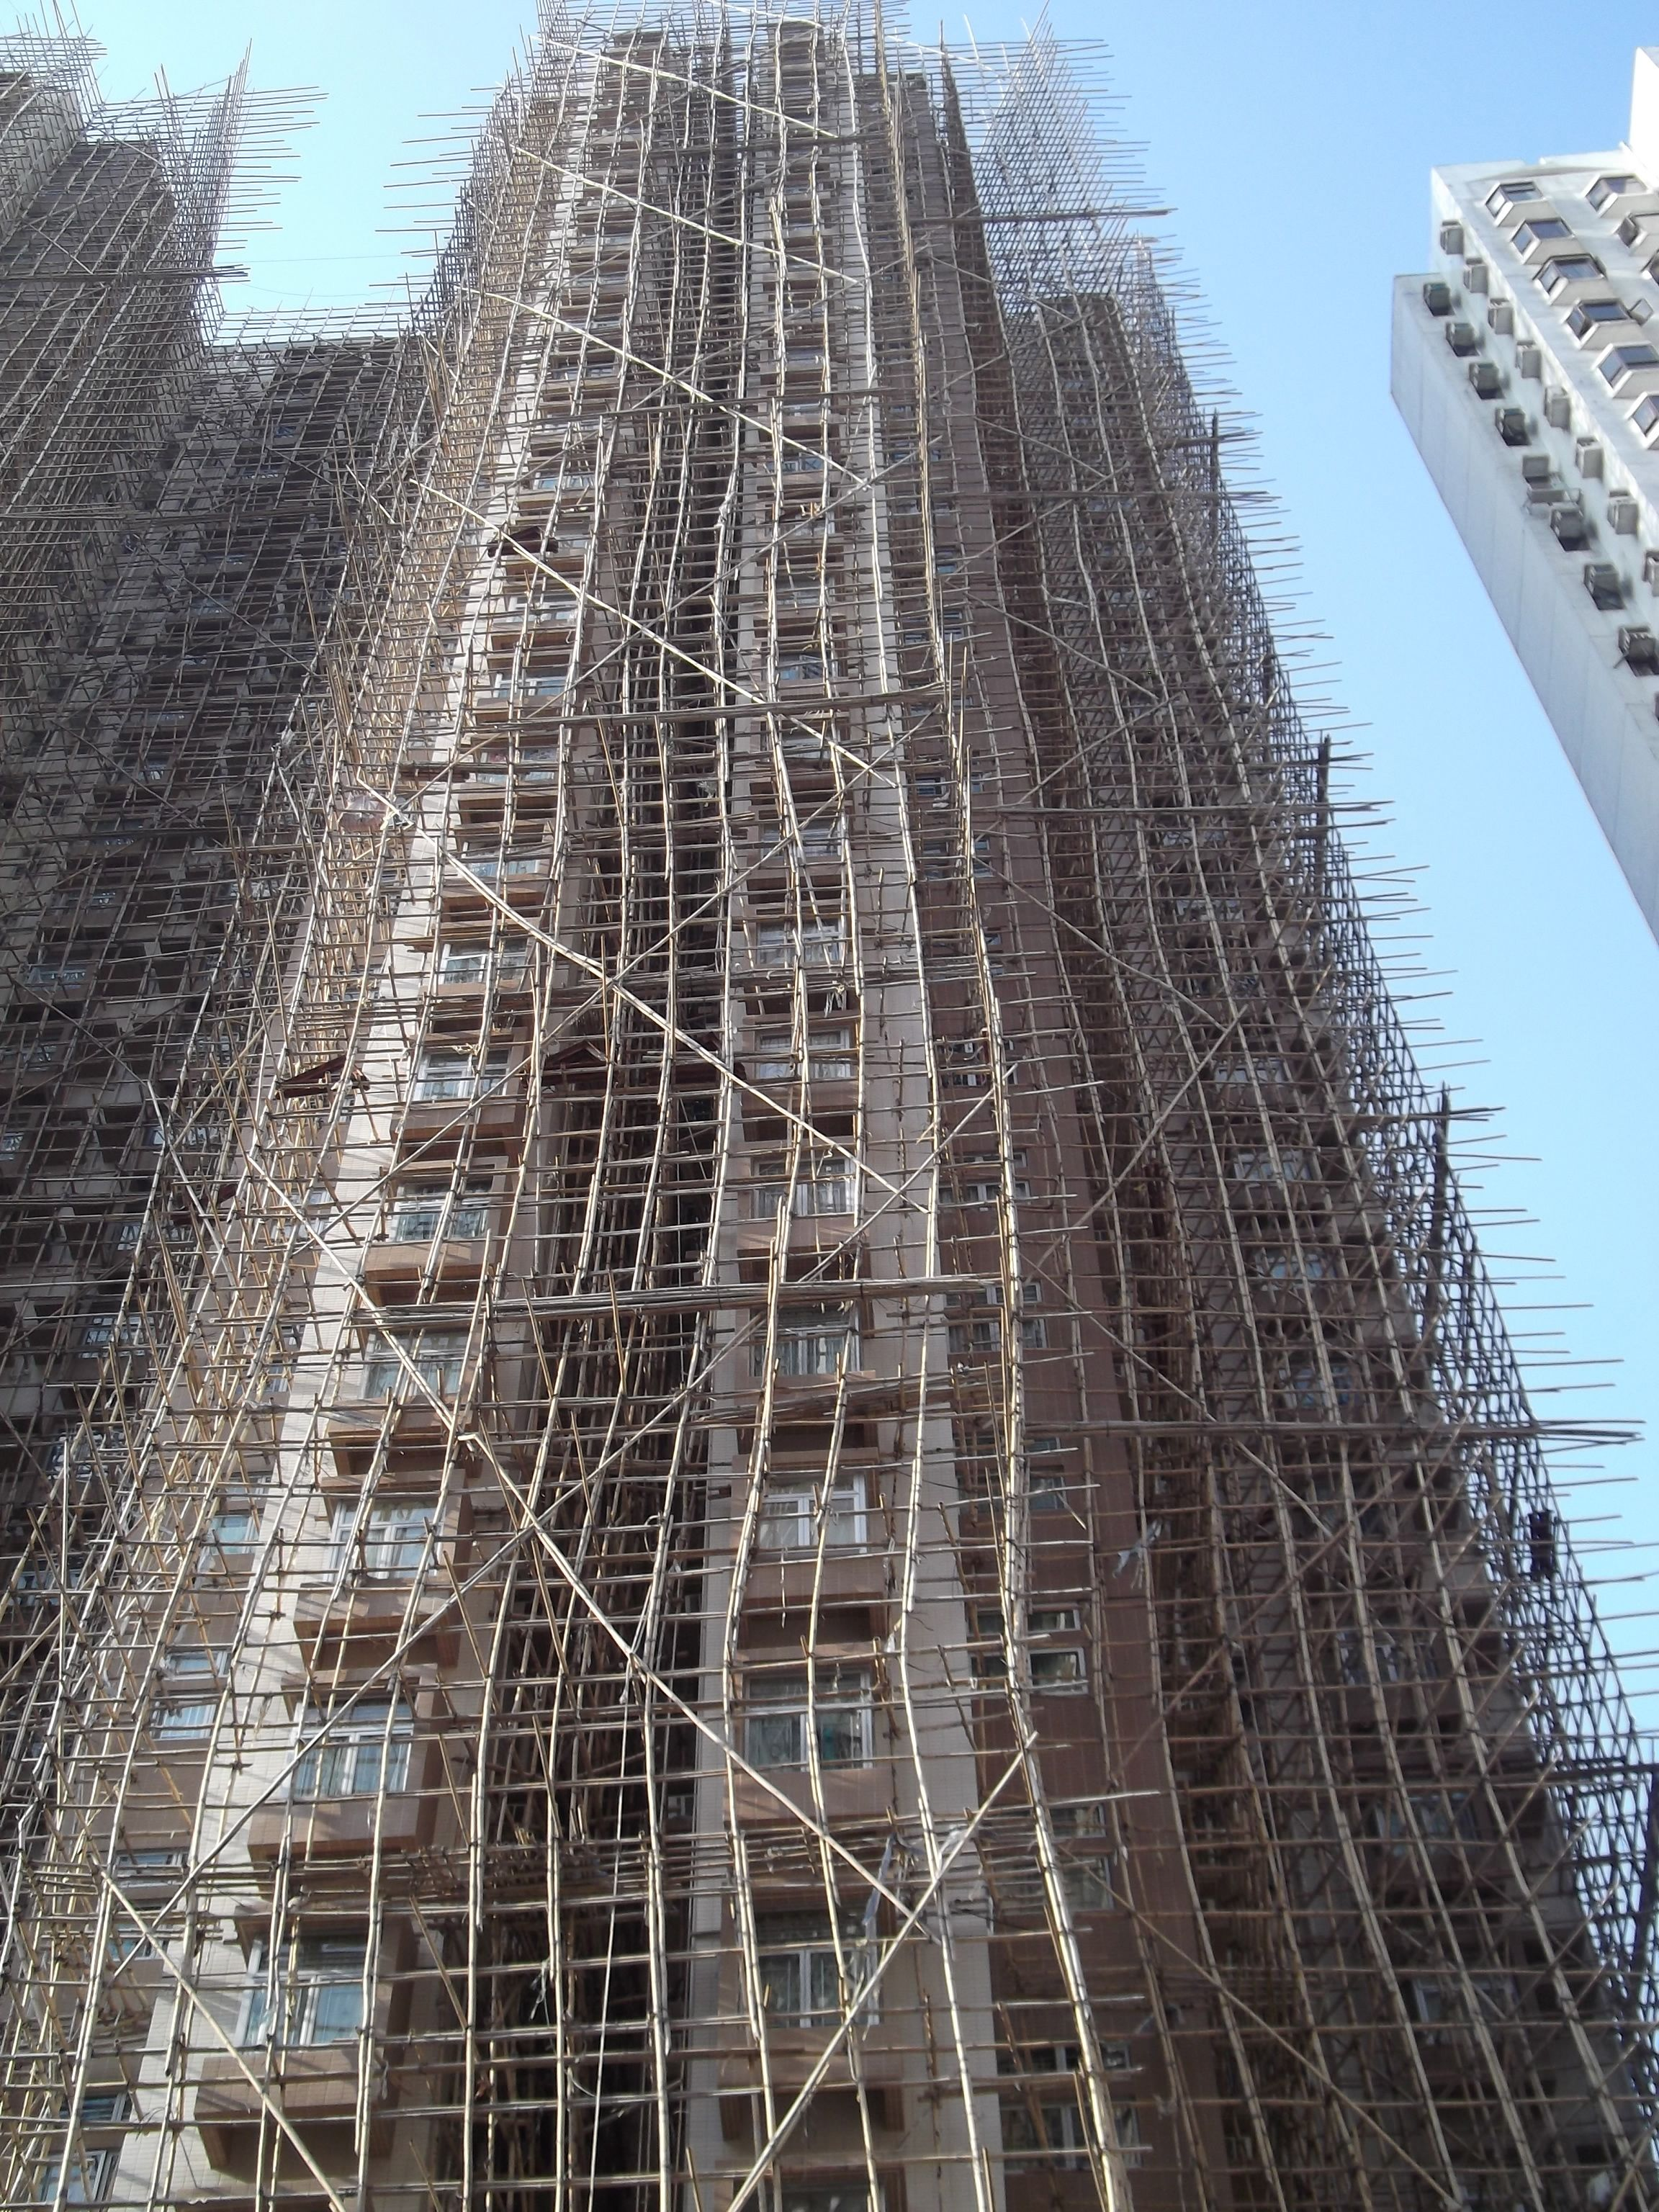 scaffold alloy nationwide hire lakeside tower stair scaffolding interior